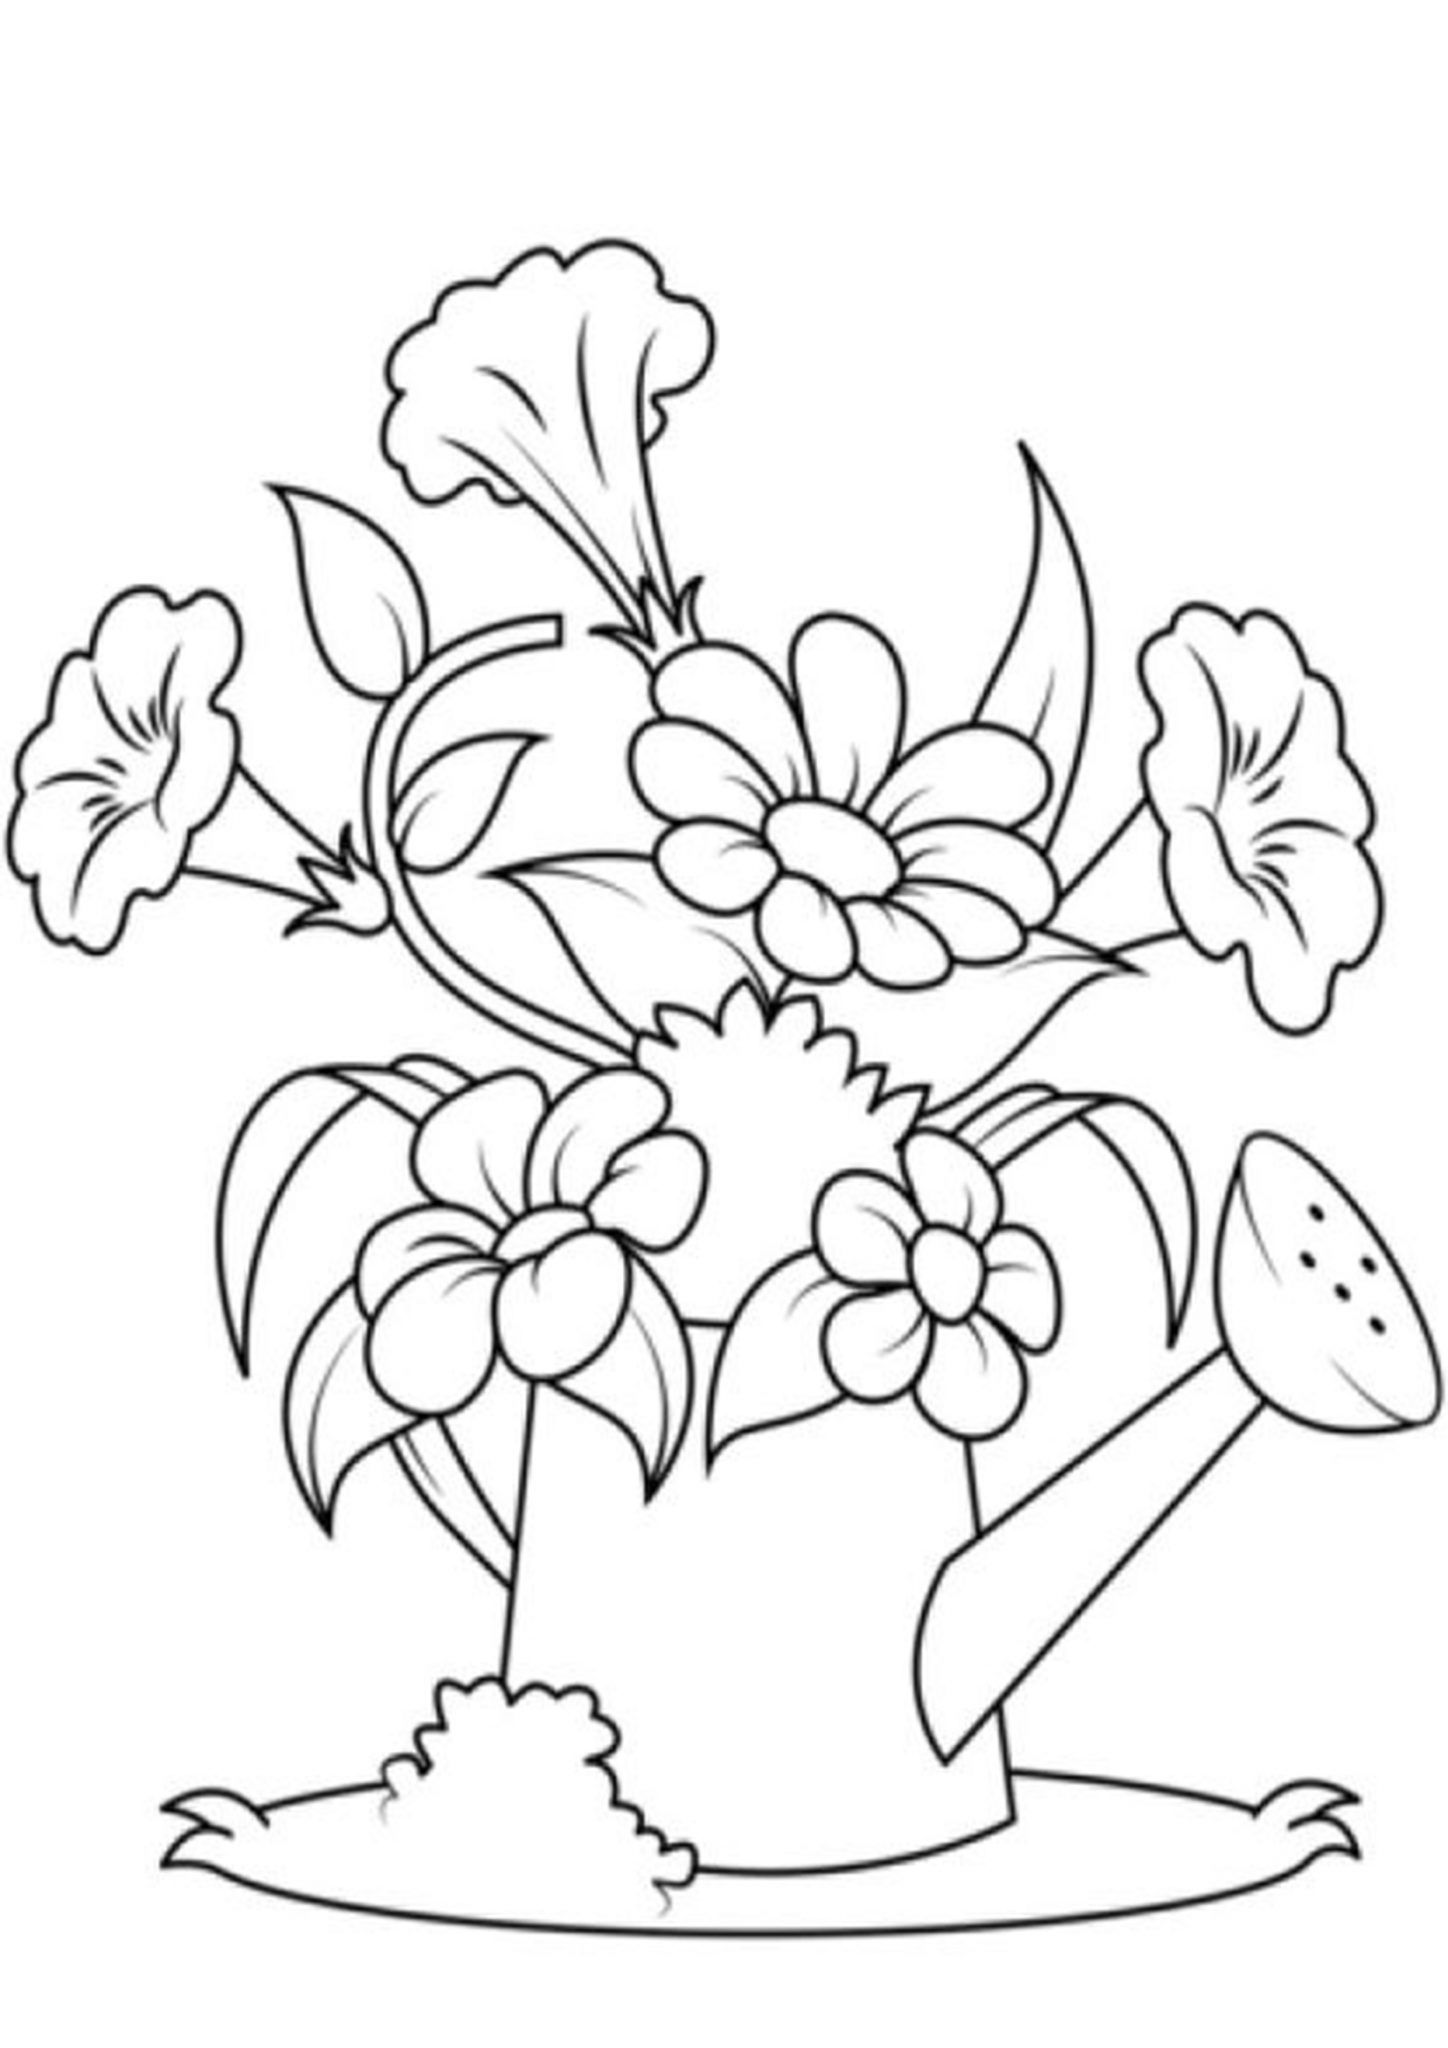 Free Easy To Print Flower Coloring Pages Flower Coloring Pages Flower Coloring Sheets Colouring Pages